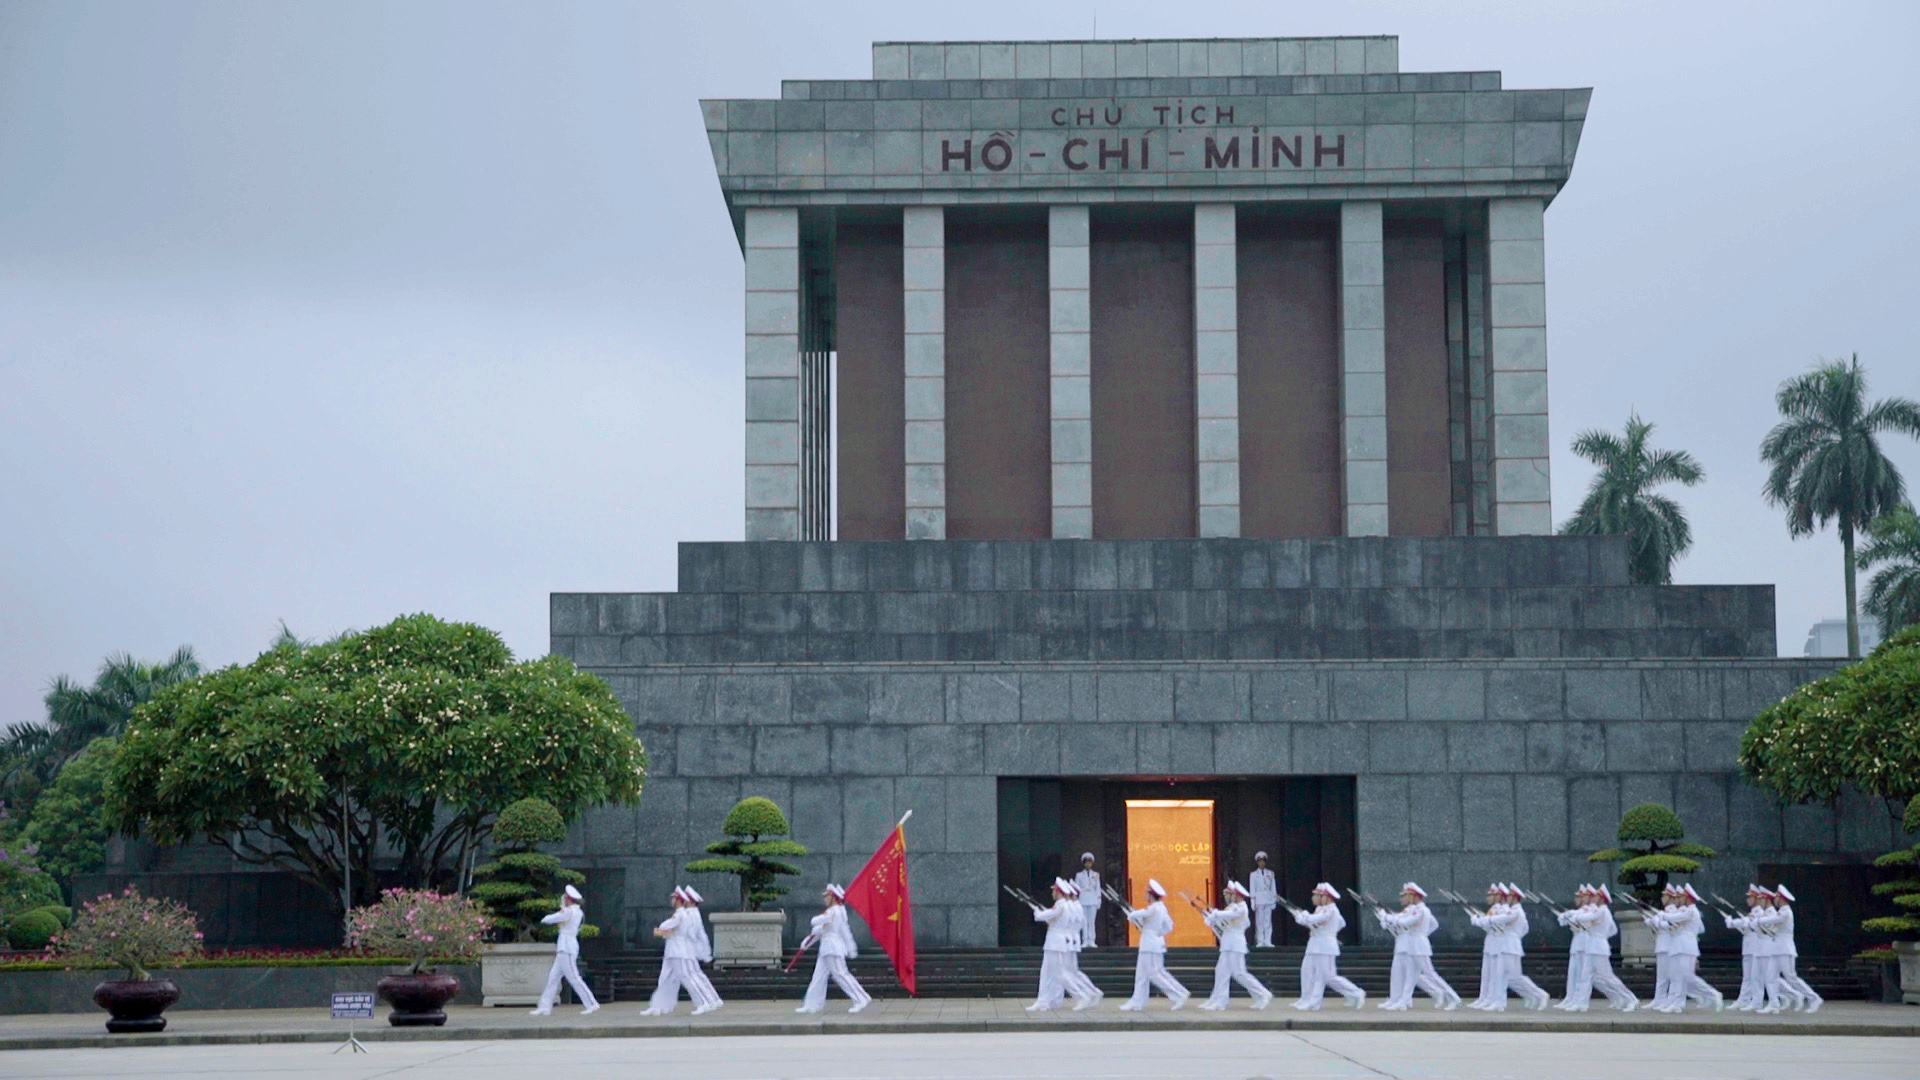 Ho Chi Minh Mausoleum: How to visit the sacred site in Vietnam   CNN Travel